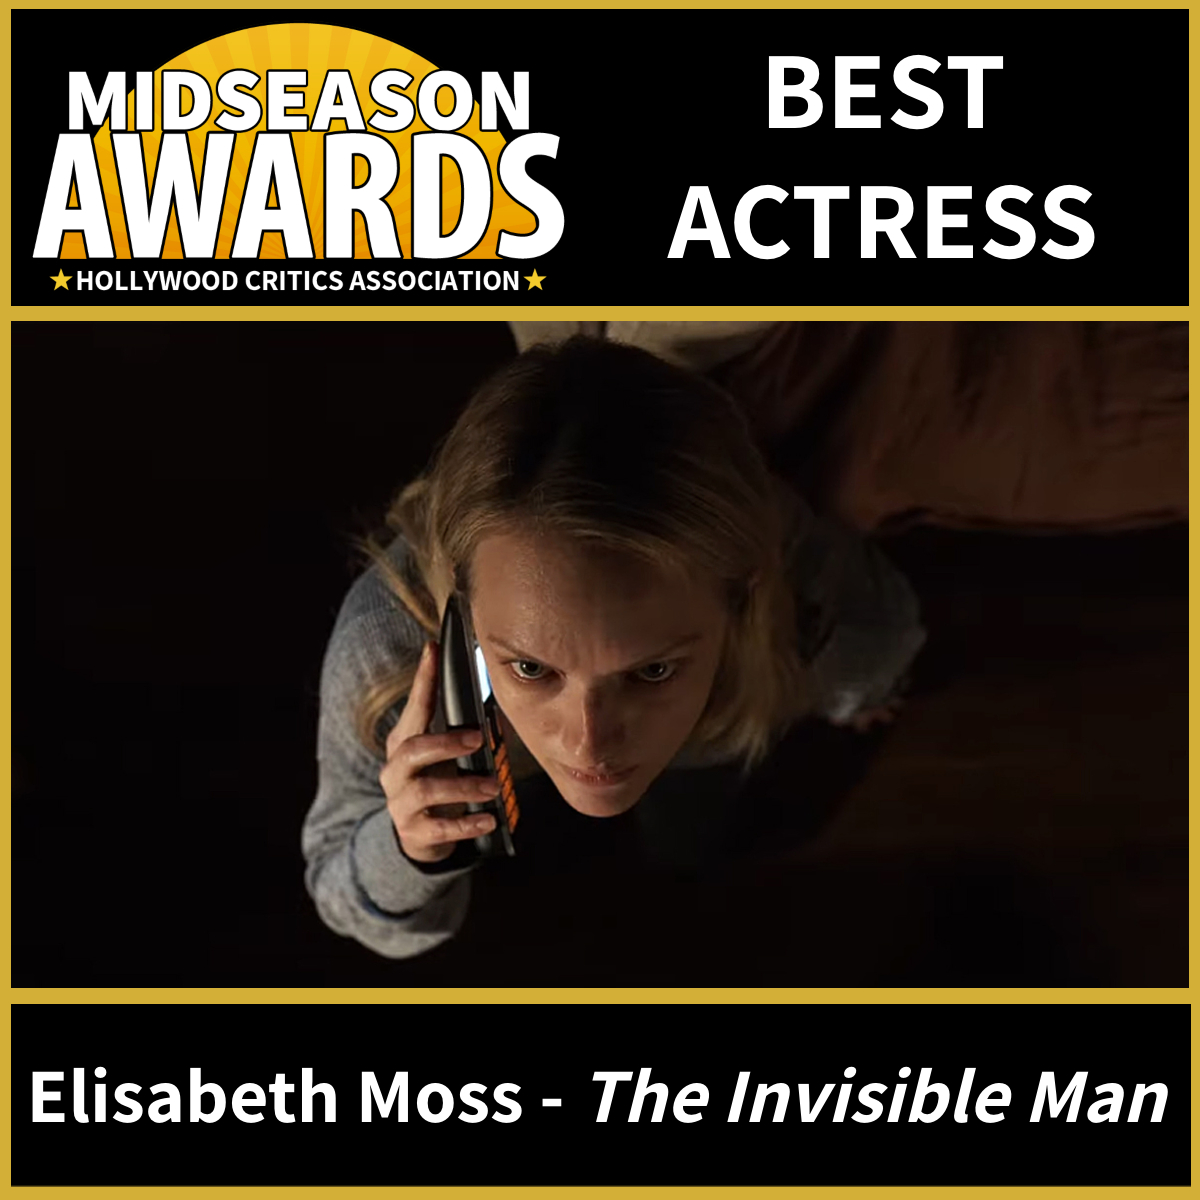 Elisabeth Moss - Best Actress - The Invisible Man